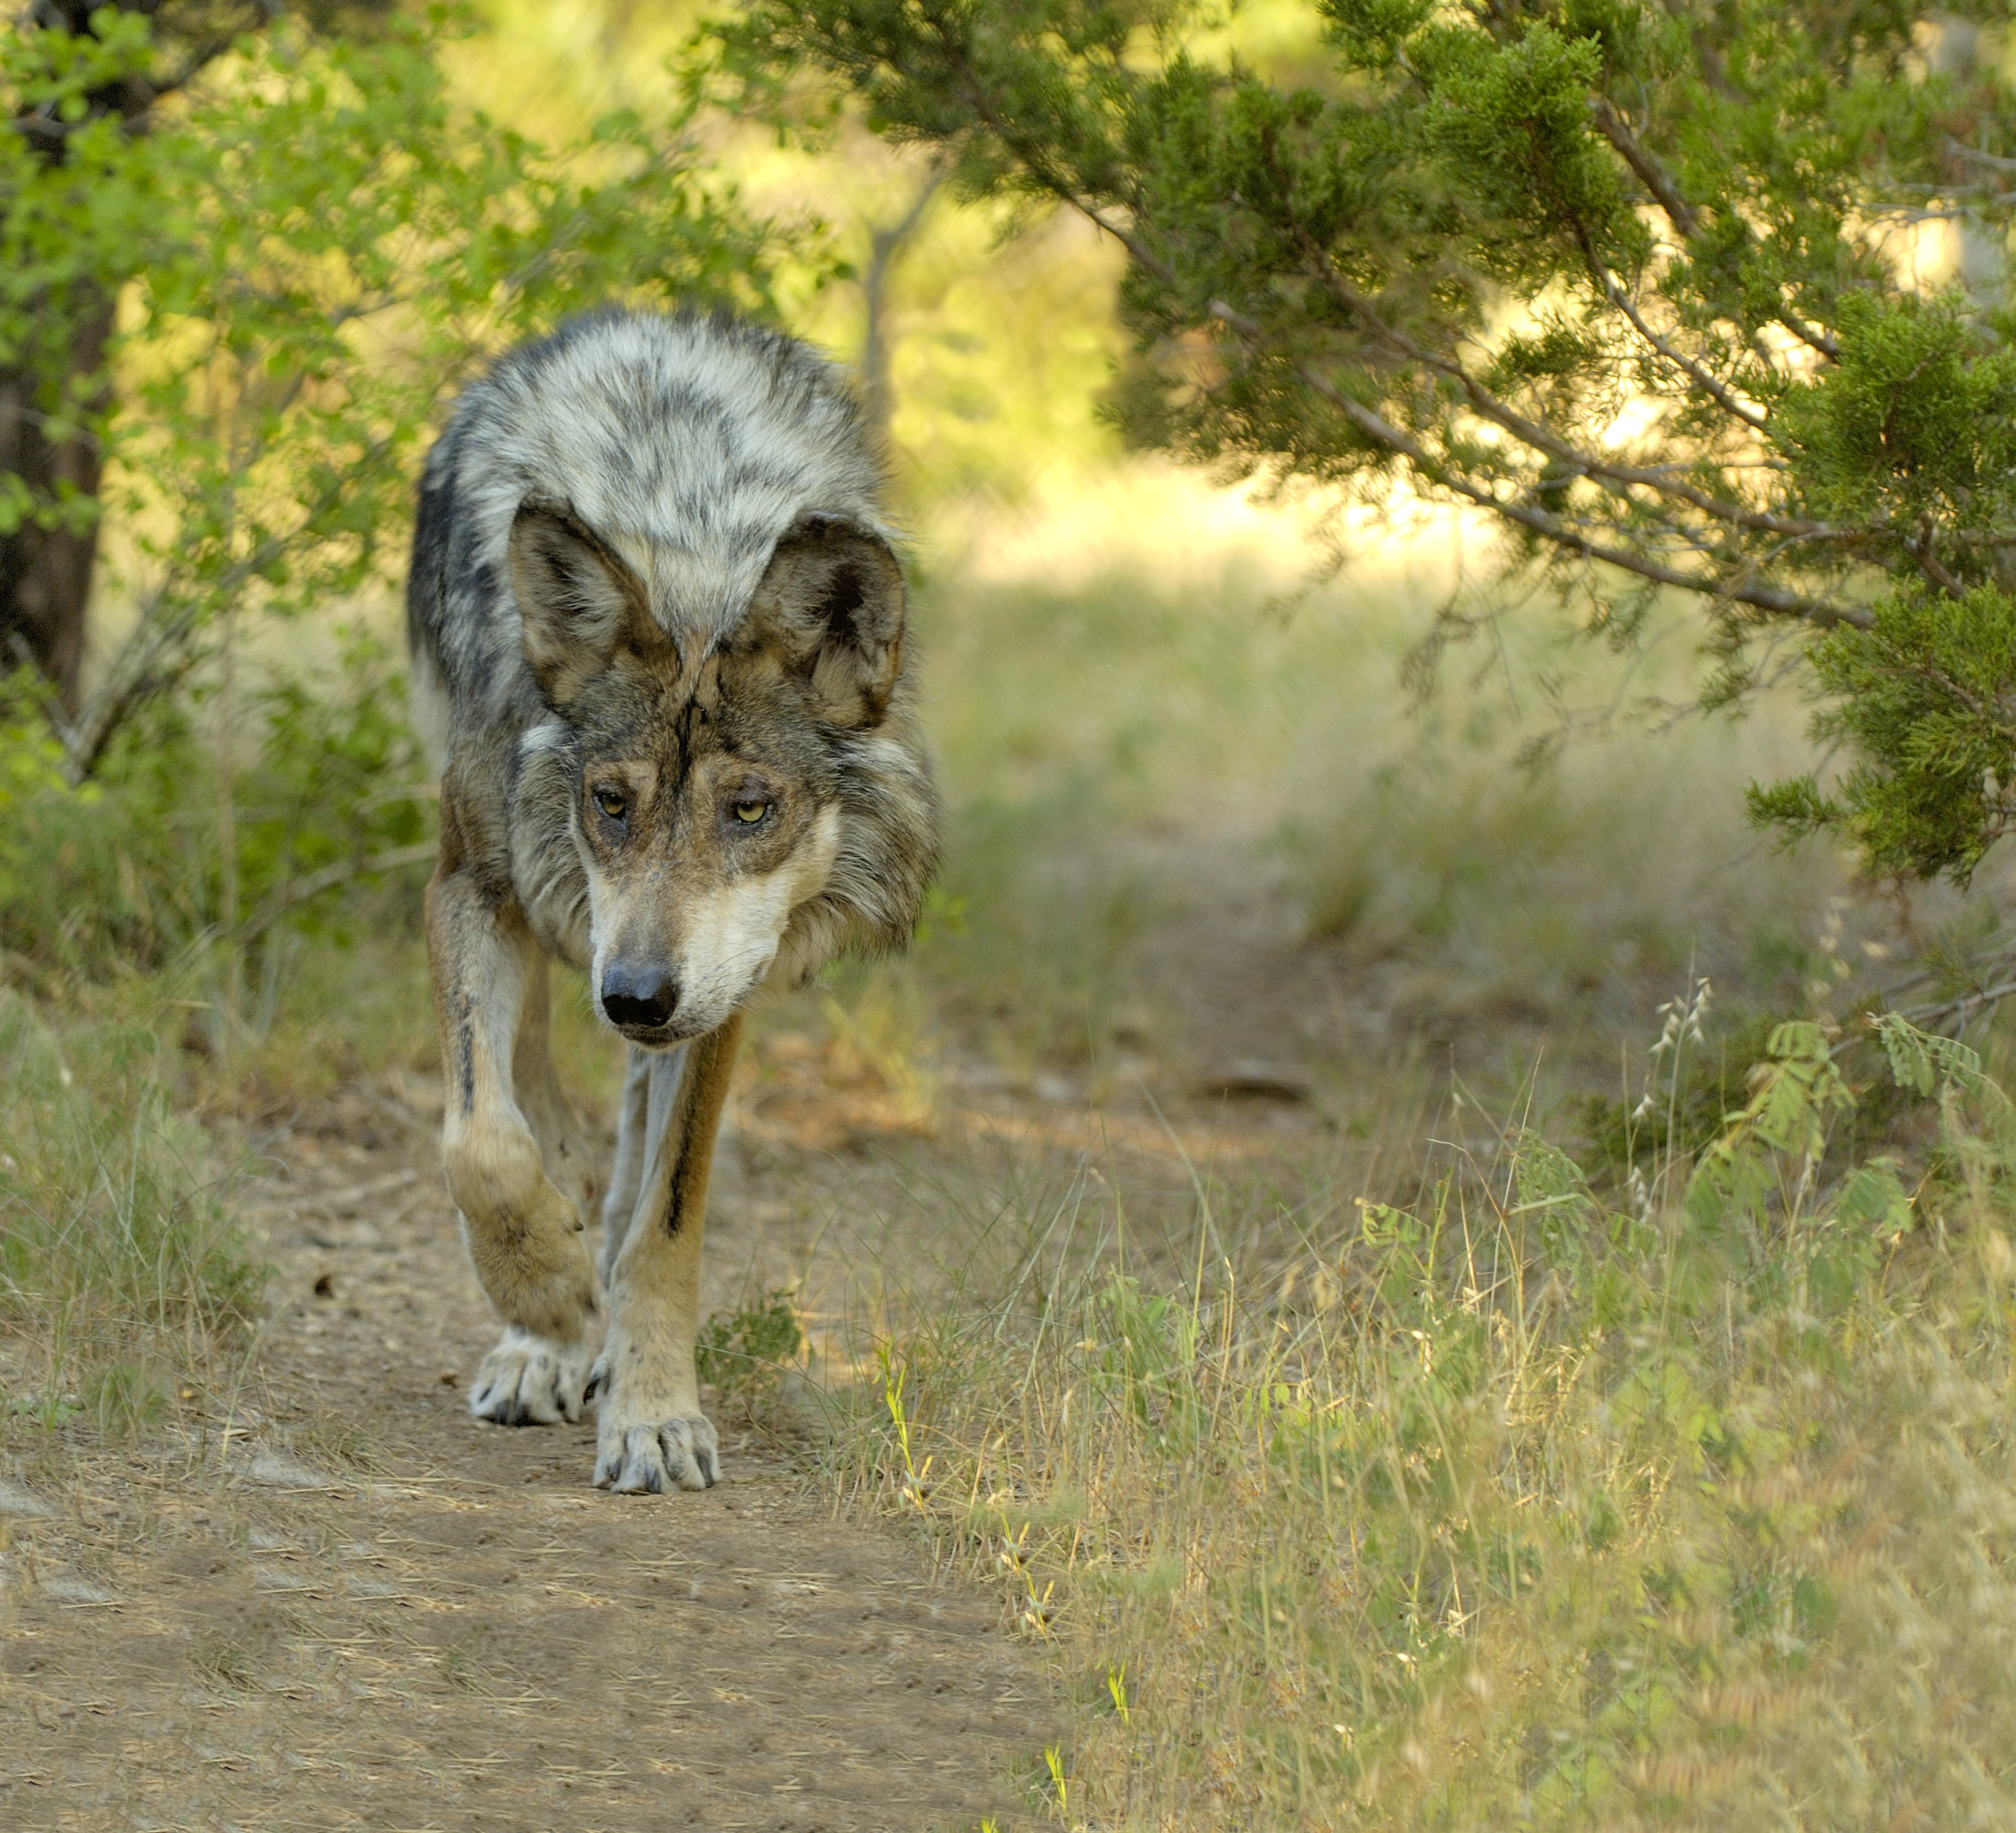 characteristics of gray wolves Common names such as eastern timber wolf and rocky mountain wolf describe geographic origin more than distinguishing physical characteristics all gray wolves are much more similar than they are distinct.